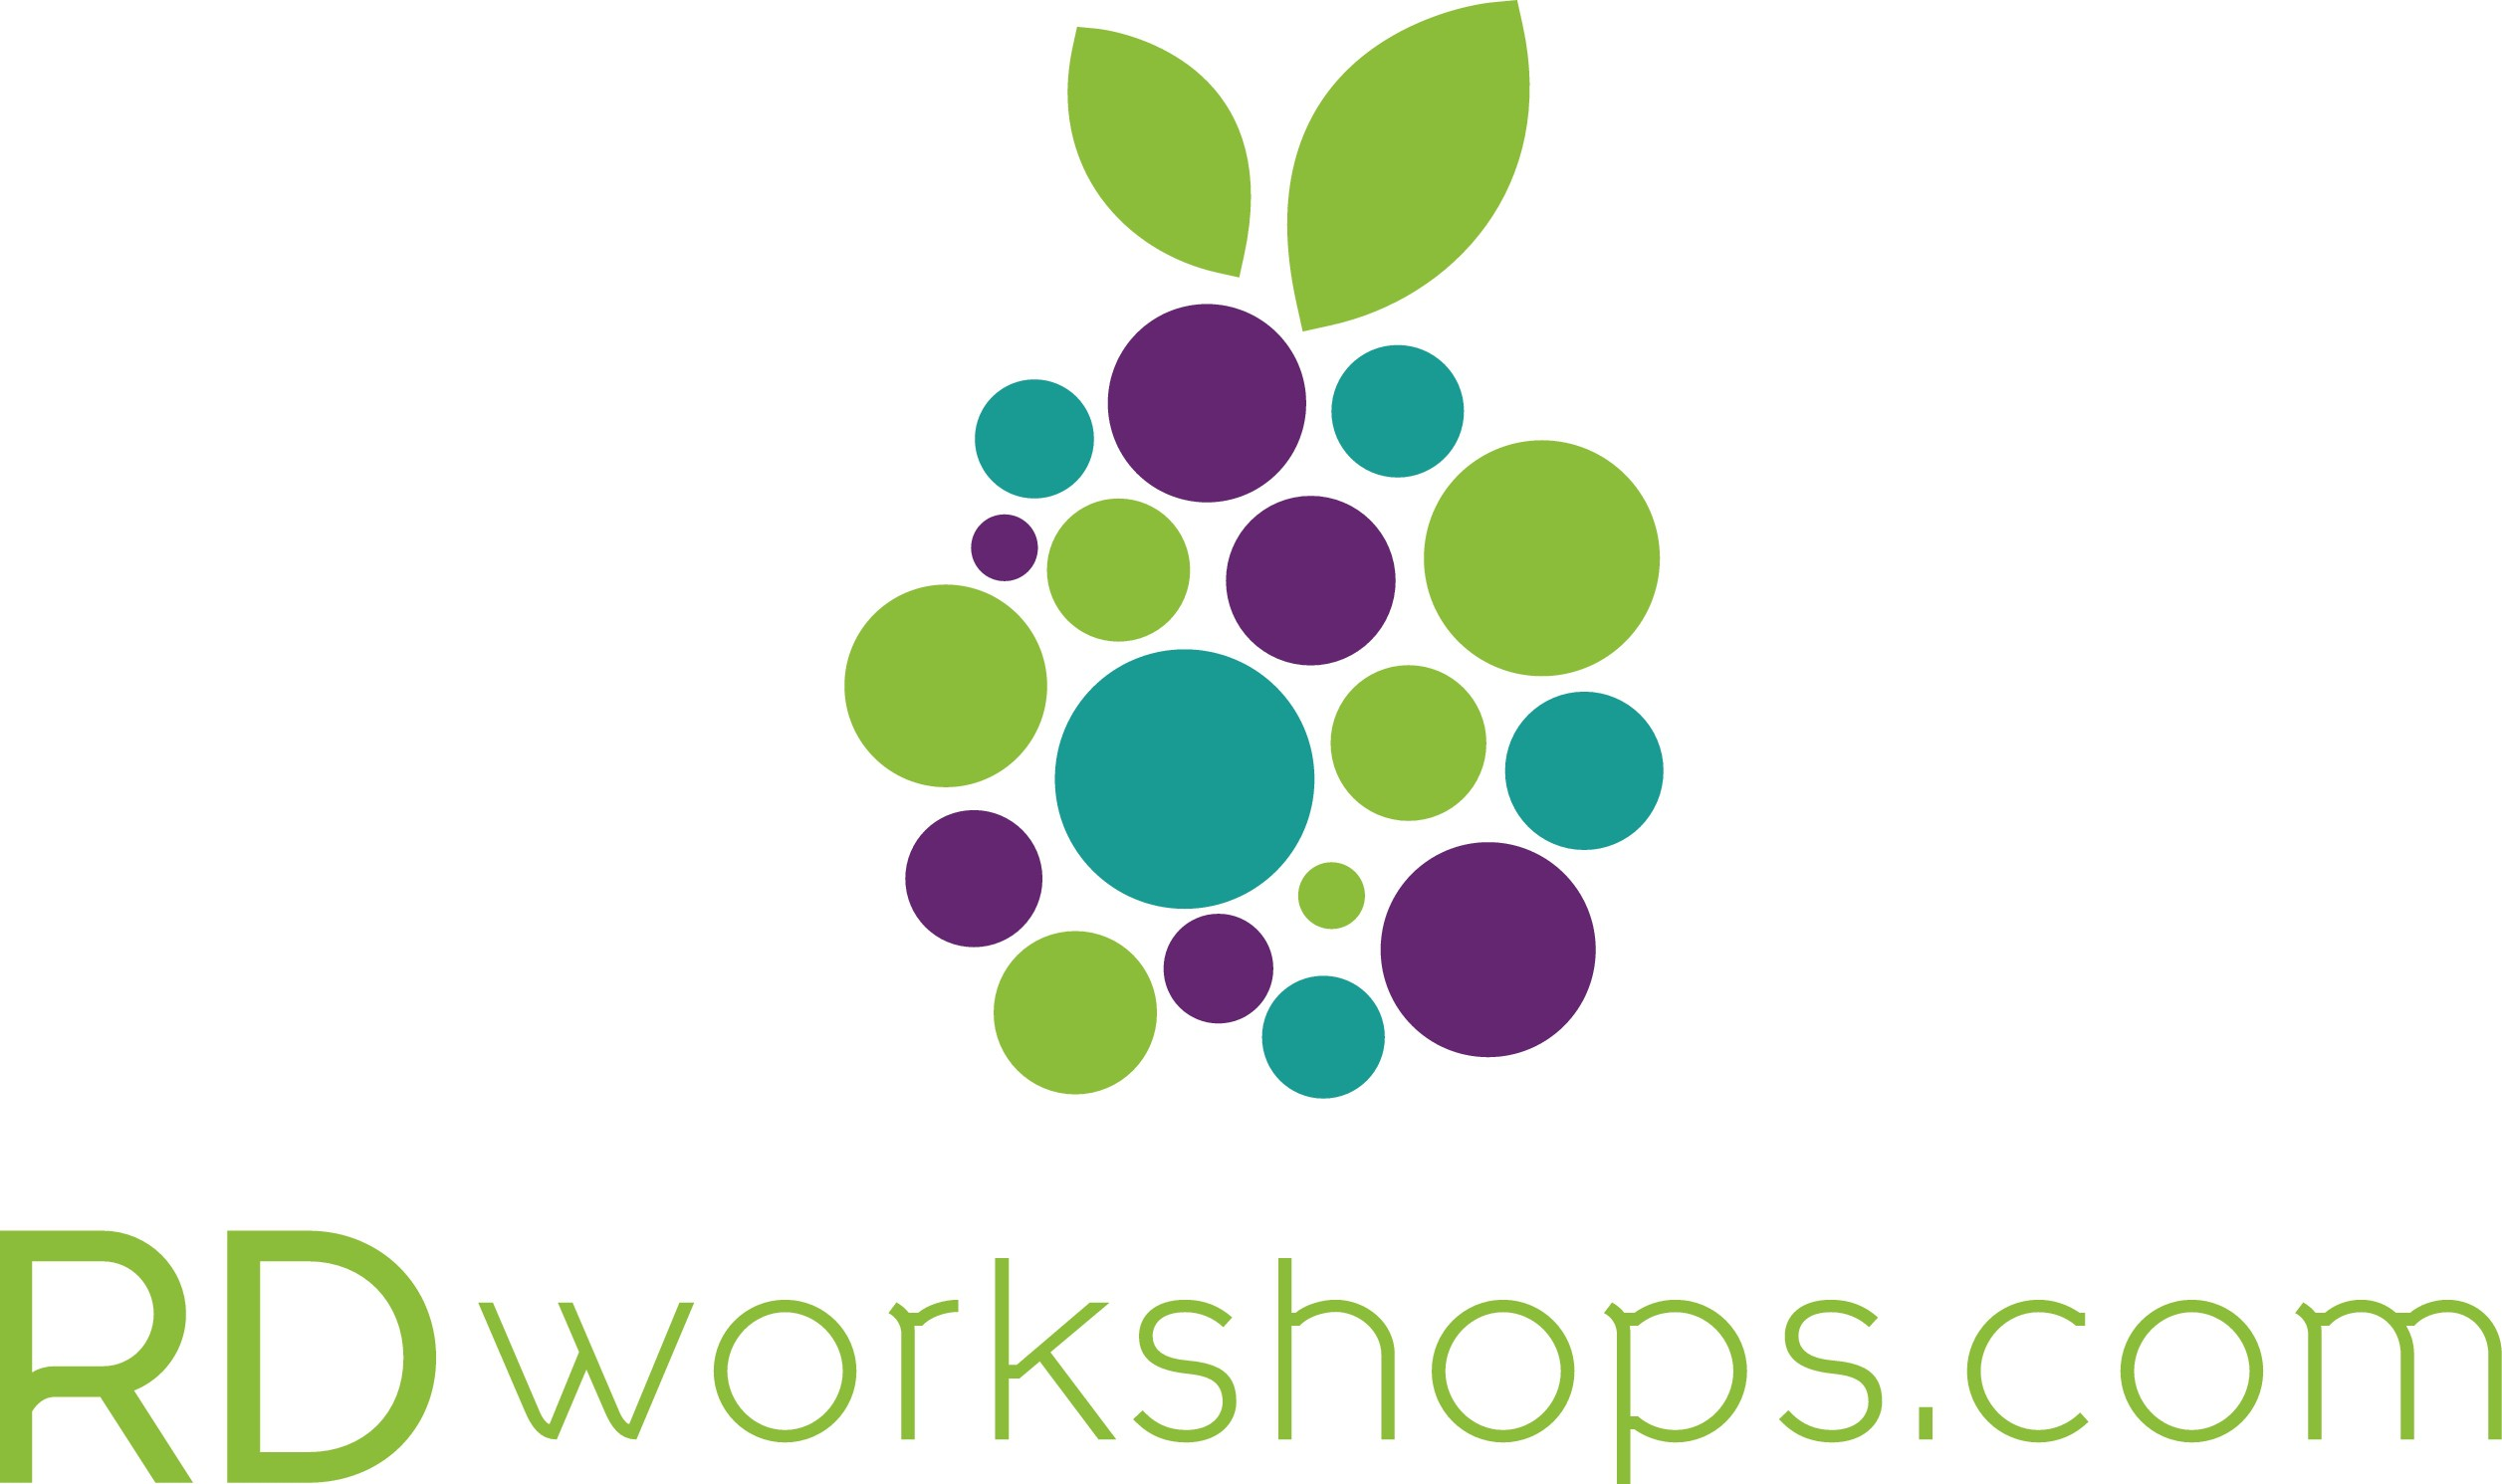 Create a professional, modern logo & business card for an education company focused on training dietitians.